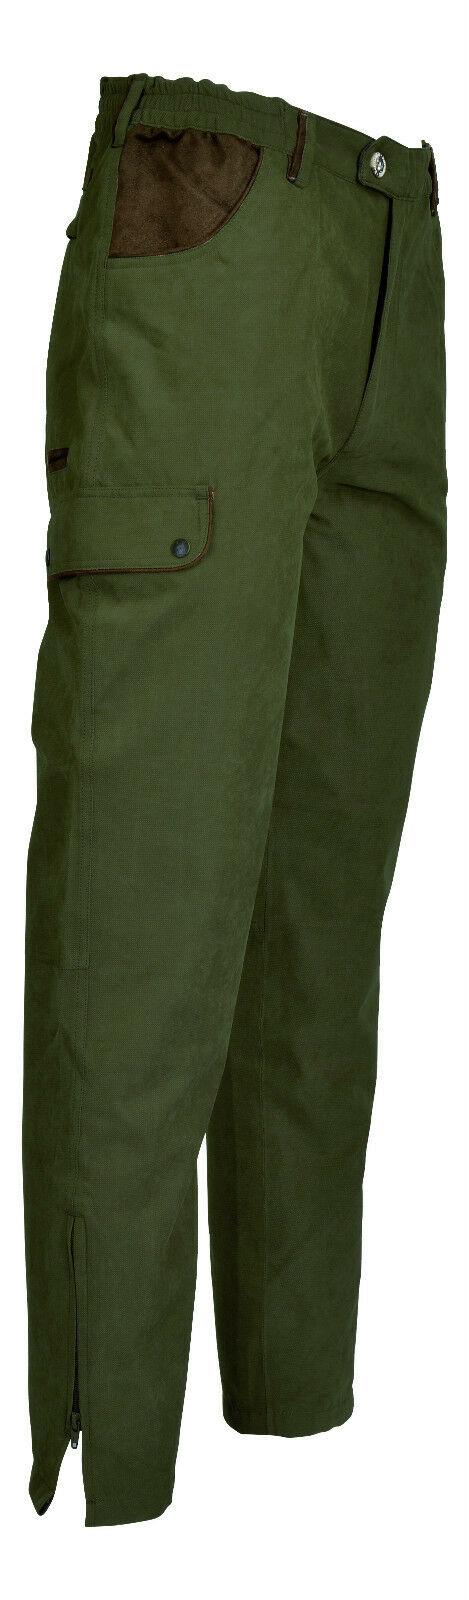 Percussion Mens Rambouillet trousers, Hunting, Shooting, Waterproof